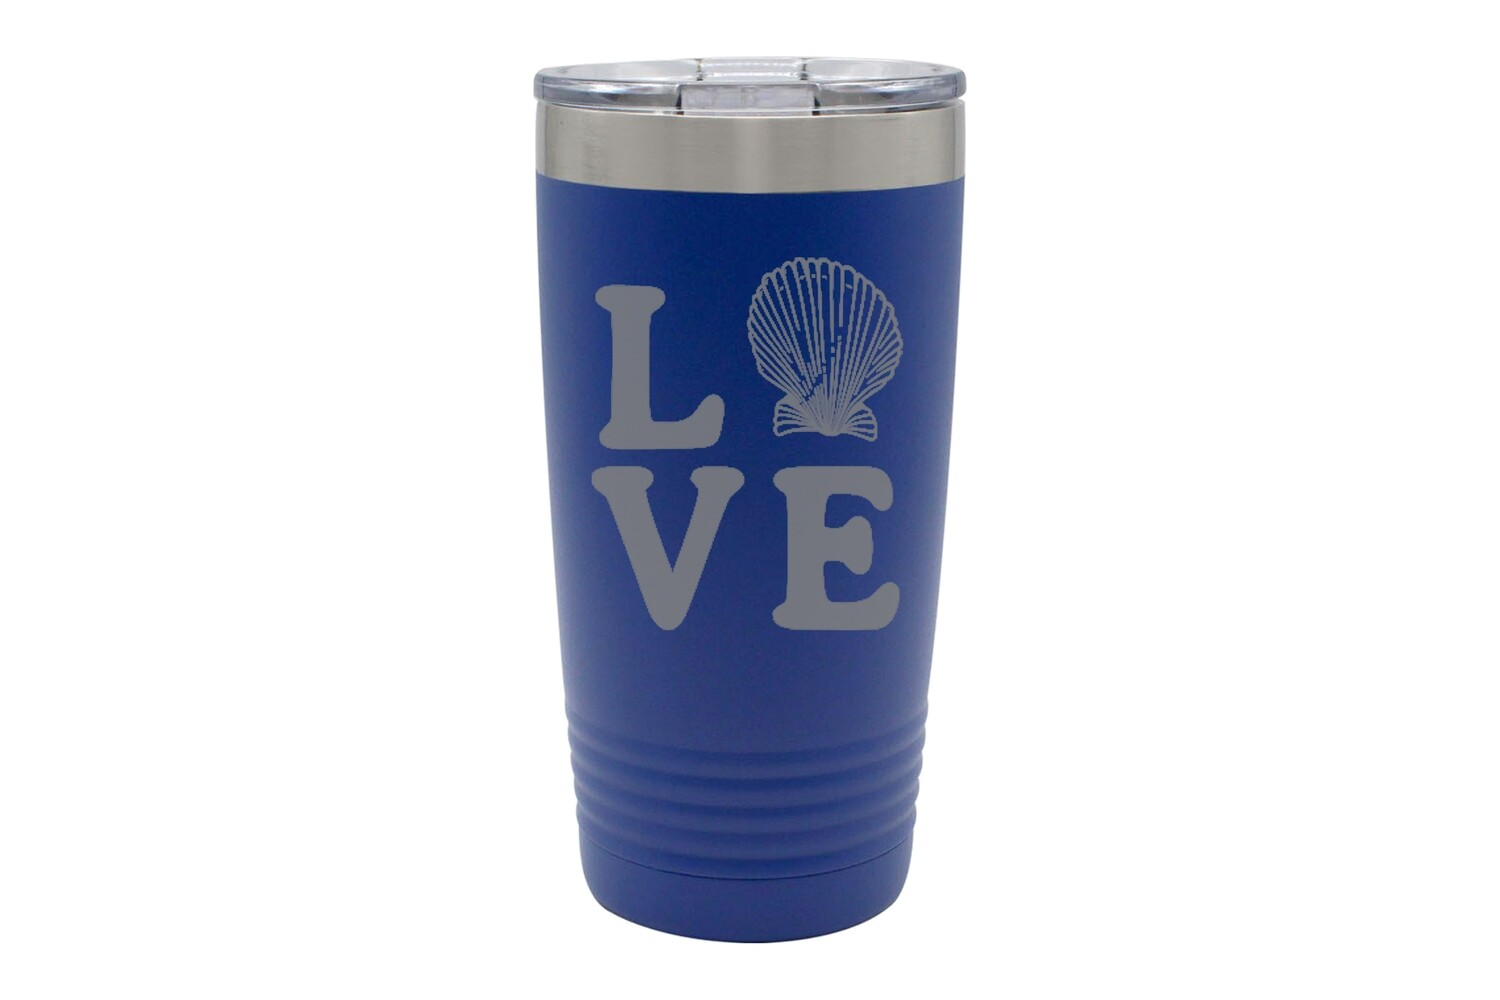 Love with Seashell Insulated Tumbler 20 oz